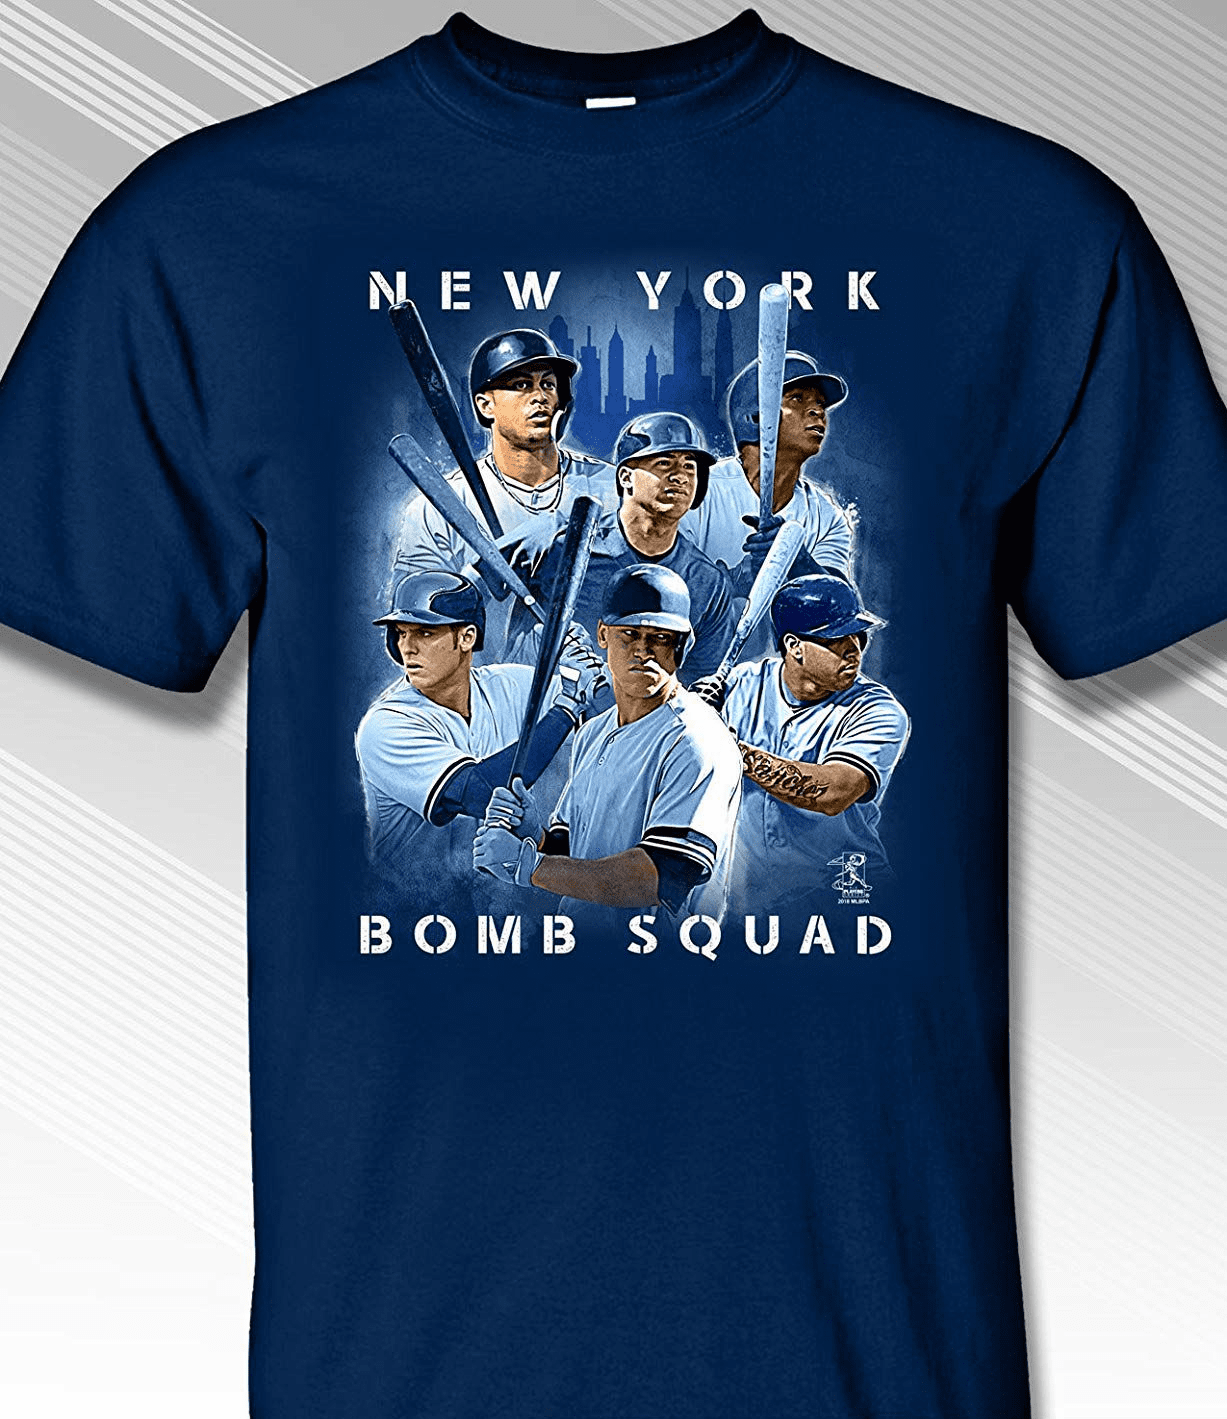 New York Bomb Squad T-Shirt<br>Short or Long Sleeve<br>Youth Med to Adult 4X